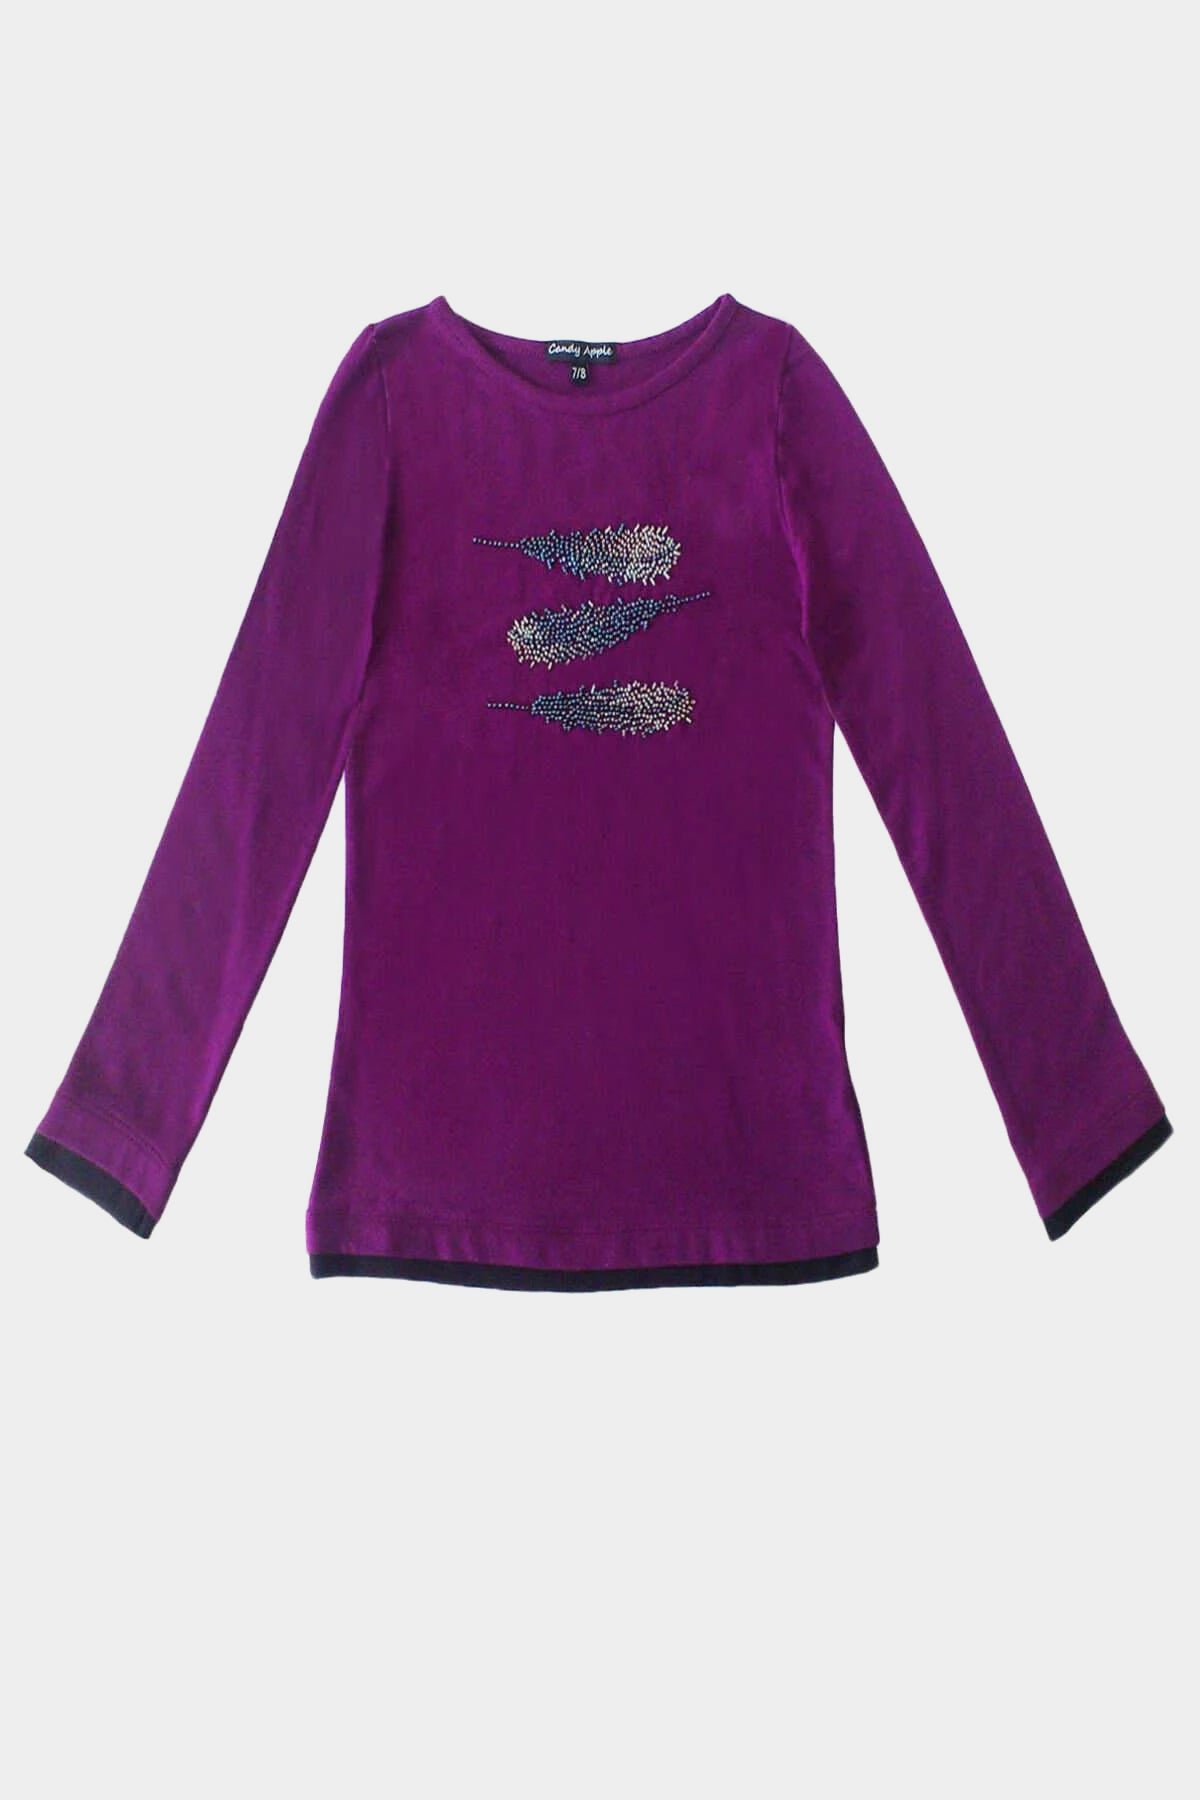 Savana - Beaded Feather Long Sleeve Top